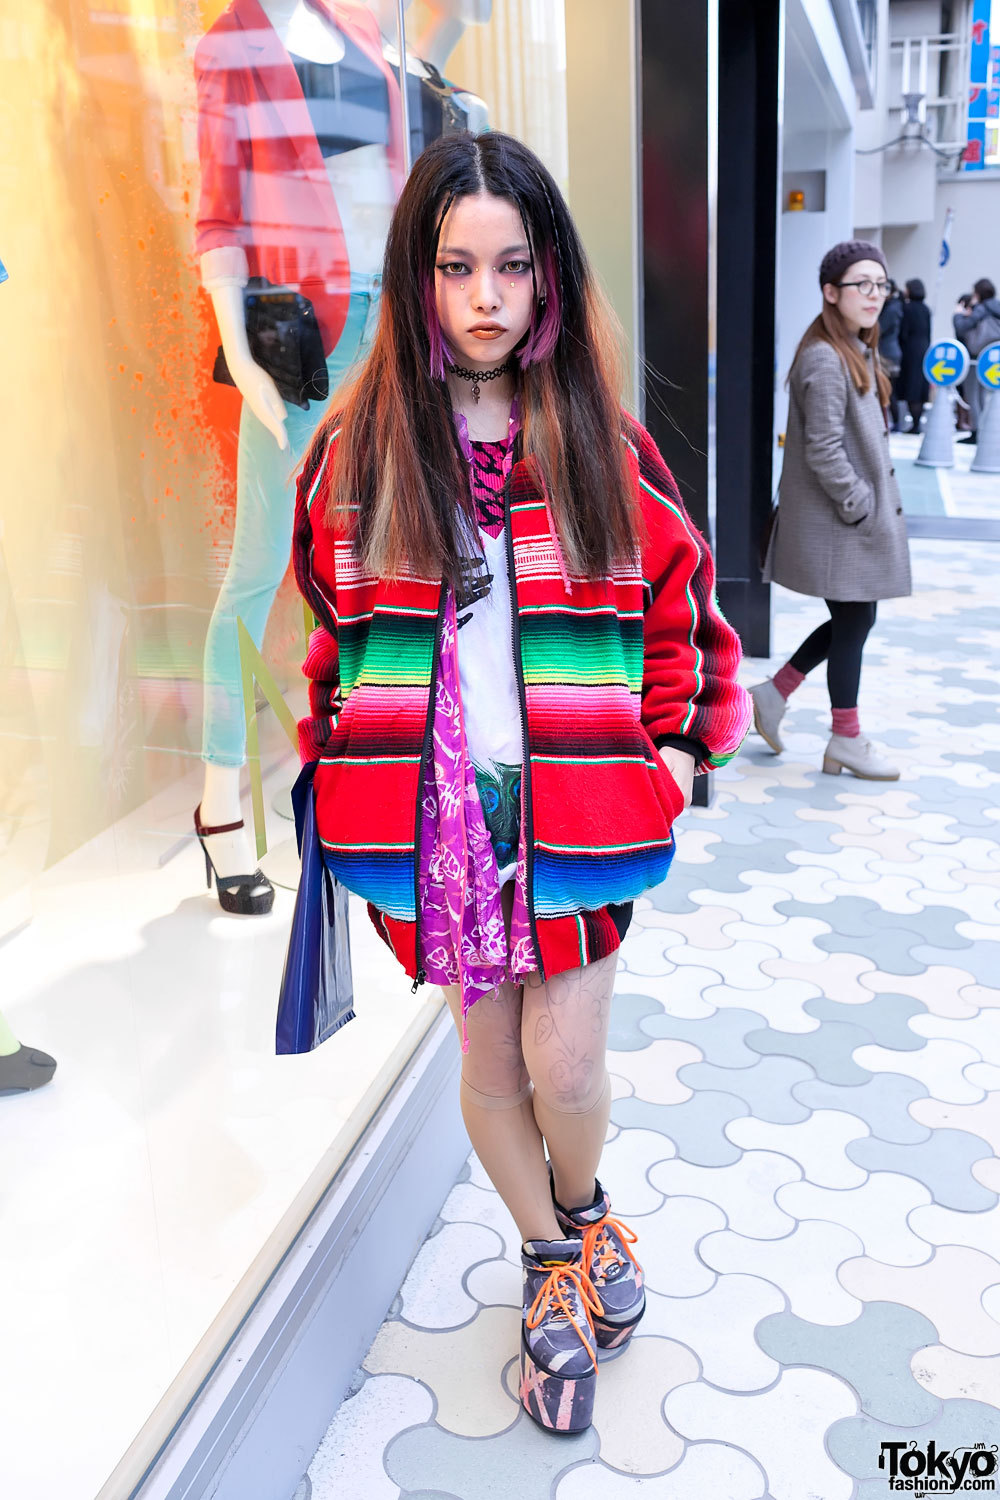 Guess who I saw in Harajuku yesterday? The one-&-only Hirari Ikeda! She was wearing awesome Moonspoon Saloon platform sneakers - pics here. Also, follow her on Tumblr.